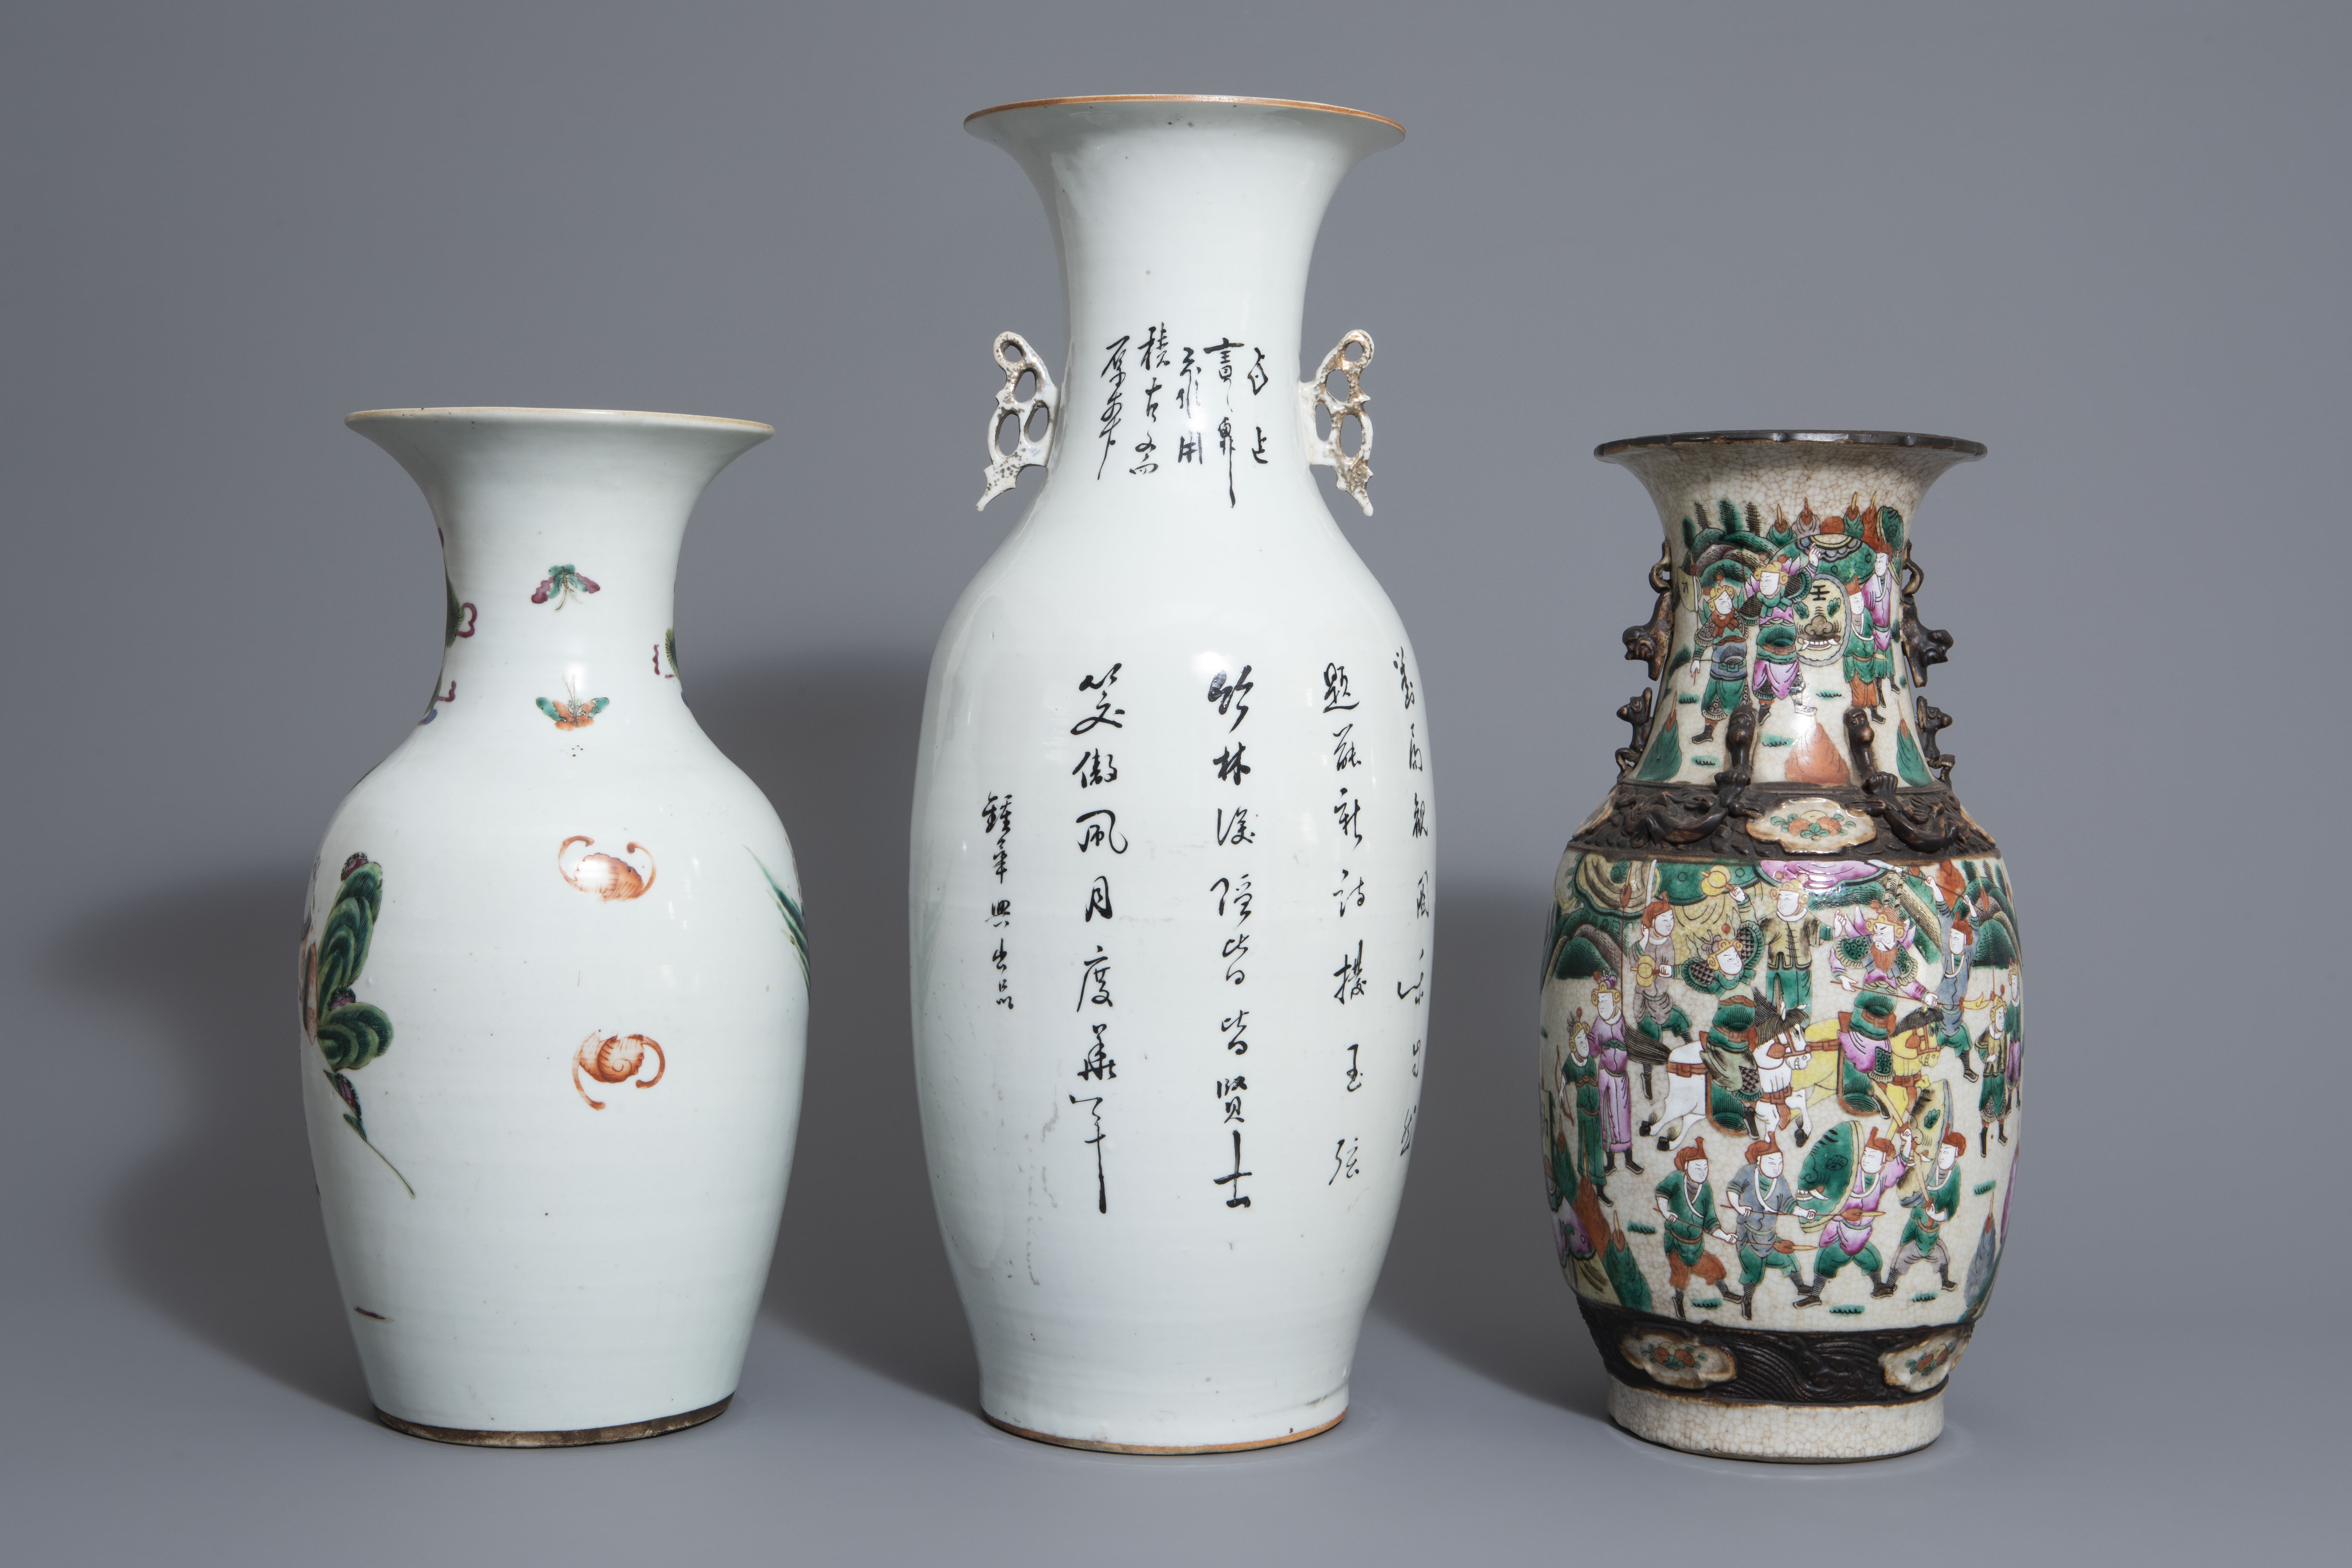 Three Chinese famille rose and Nanking crackle glazed vases, 19th C. - Image 4 of 7